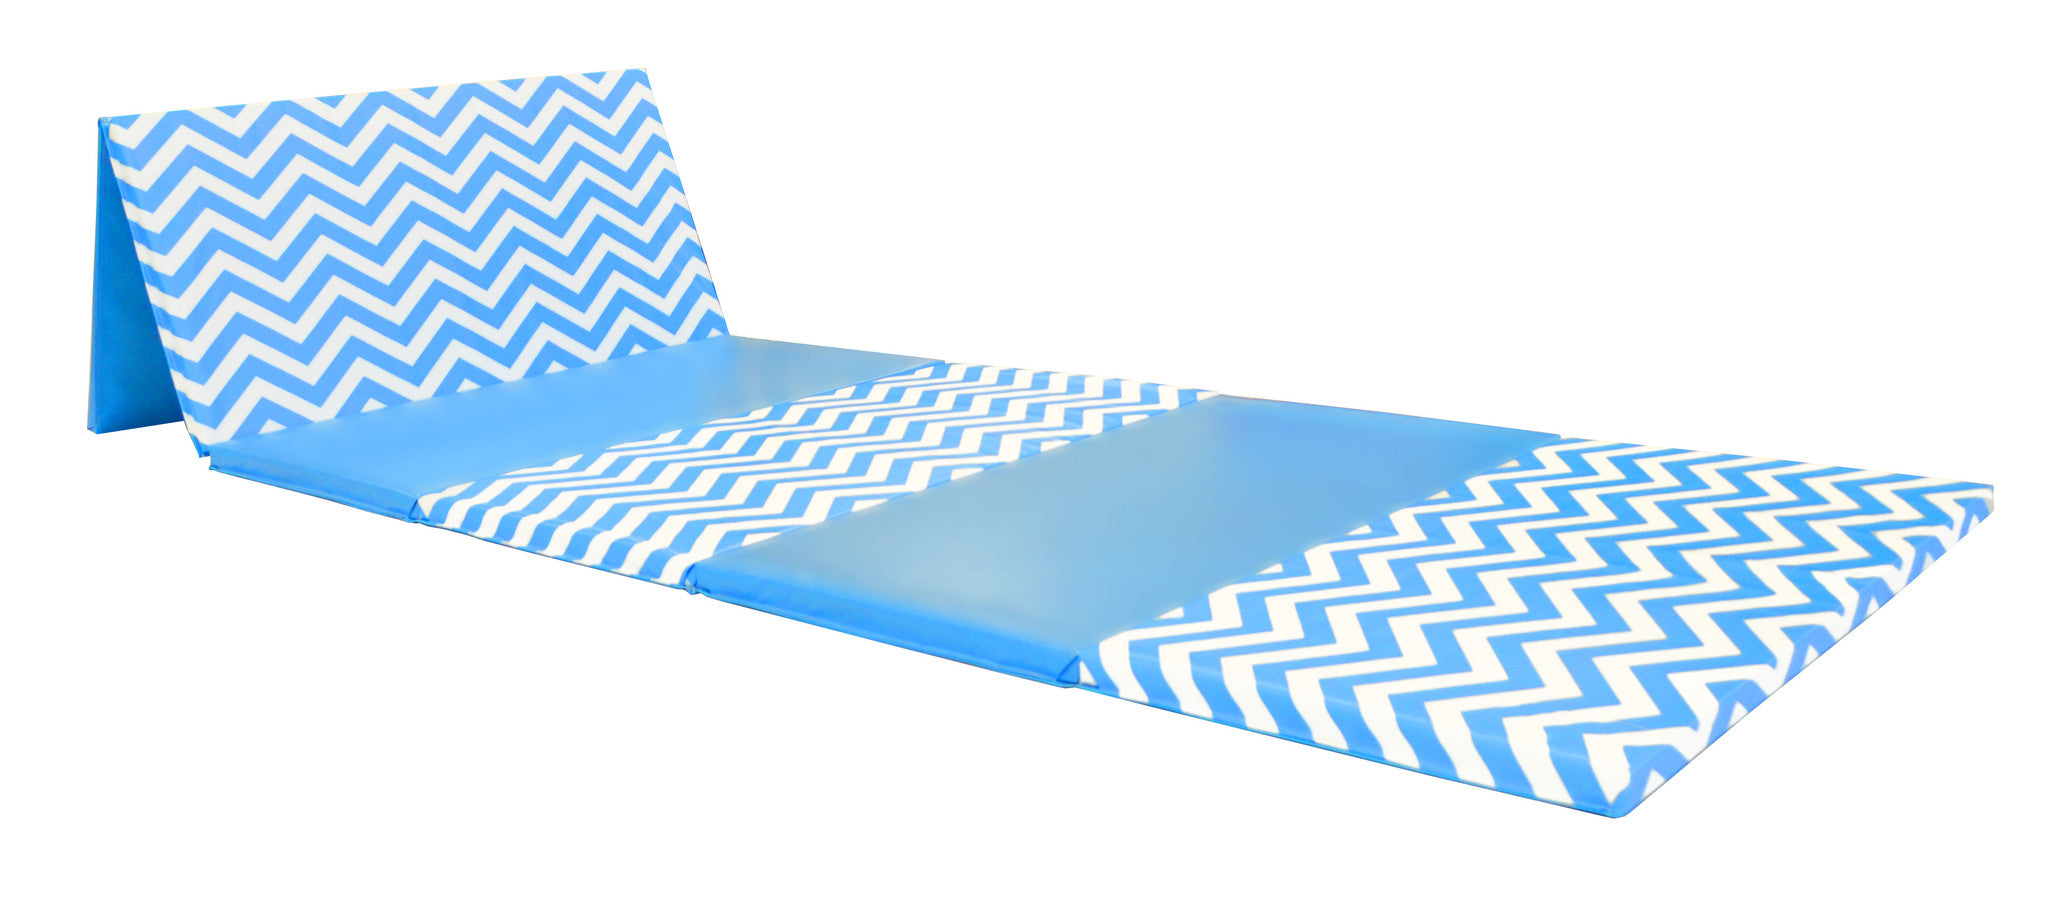 "CLEARANCE LOWEST PRICE OF THE YEAR Chevron Zigzag 4' x 12' x 2"" Intermediate Level Folding Gymnastics Mat"